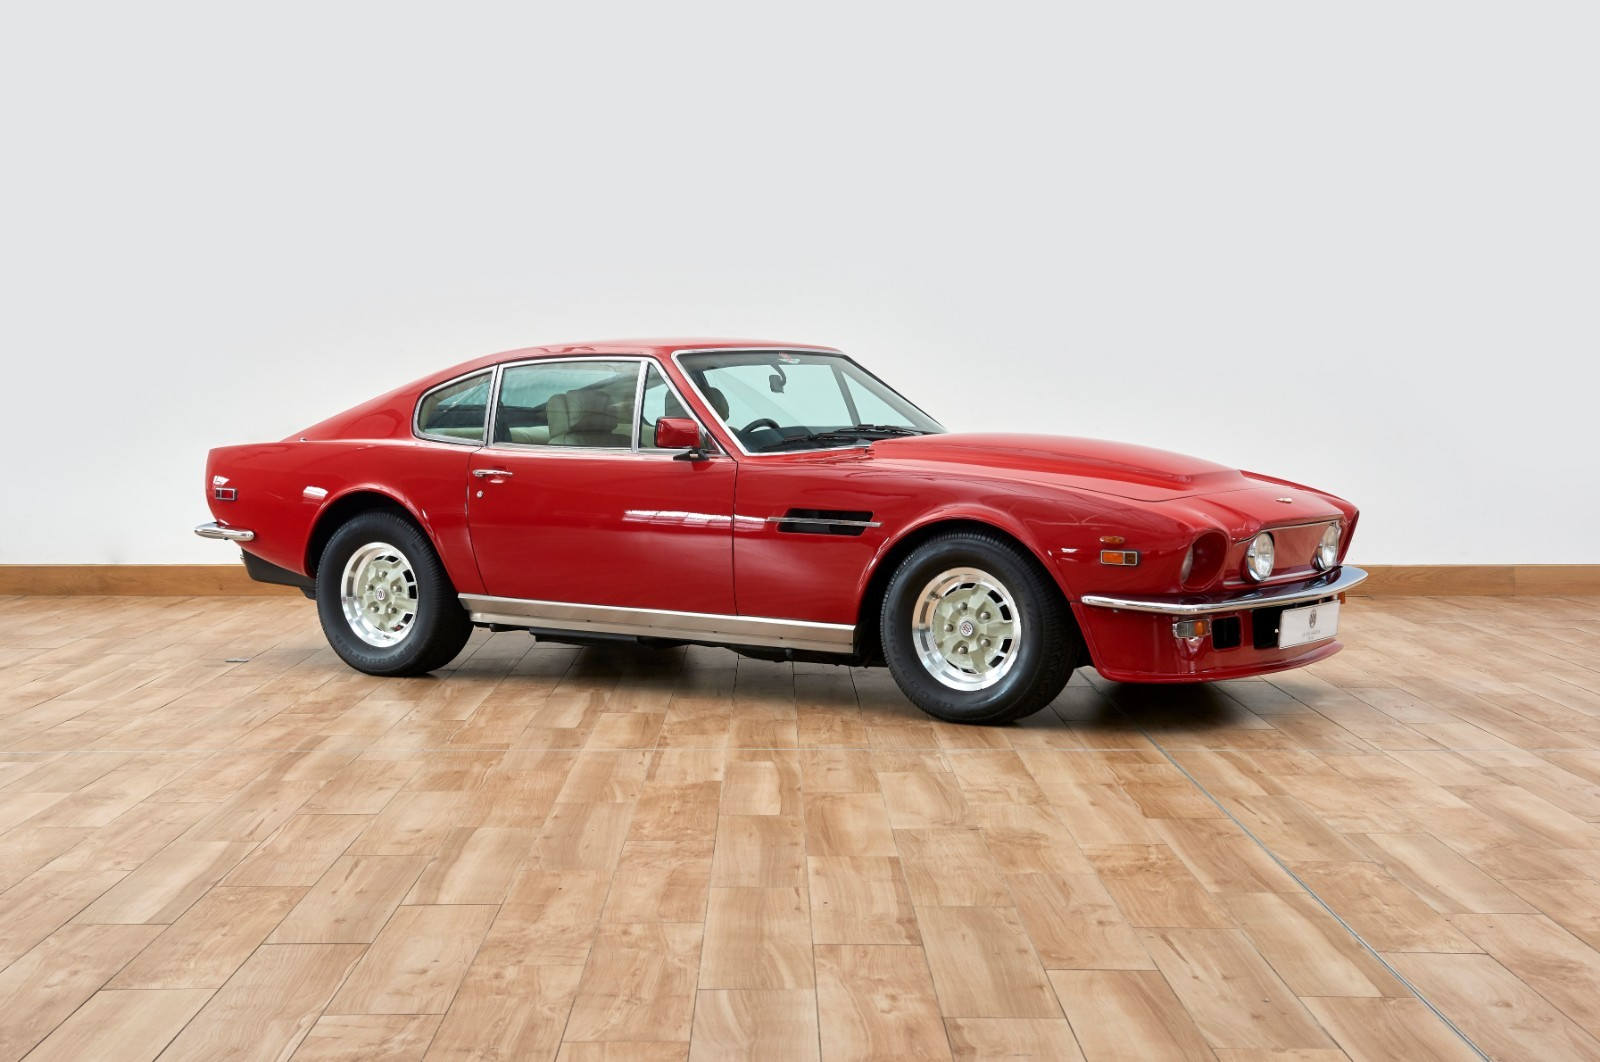 Aston Martin Amv8 Vantage Storm Red R12159 Used Cars For Sale Aston Martin Works